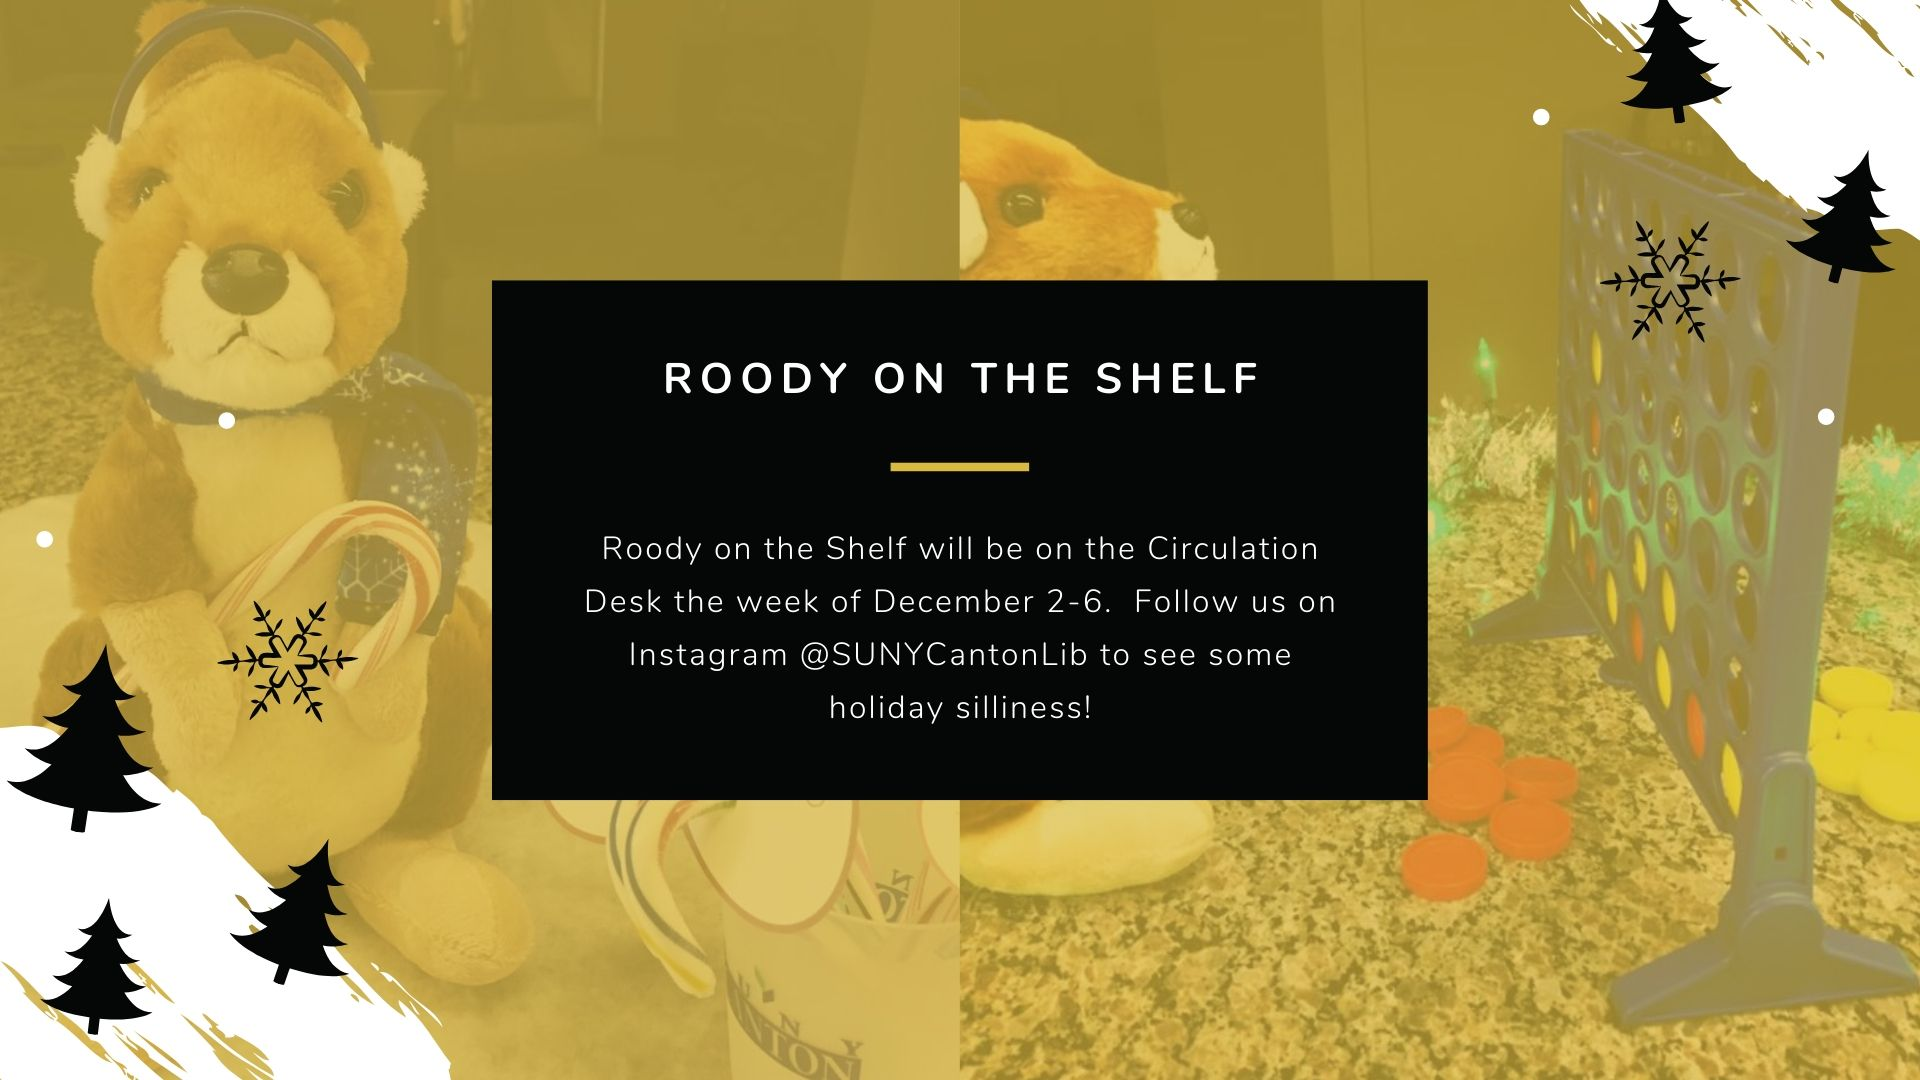 Roody on the Shelf: Roody on the Shelf will be on the Circulation Desk the week of December 2-6.  Follow us on Instagram @SUNYCantonLib to see some holiday silliness!